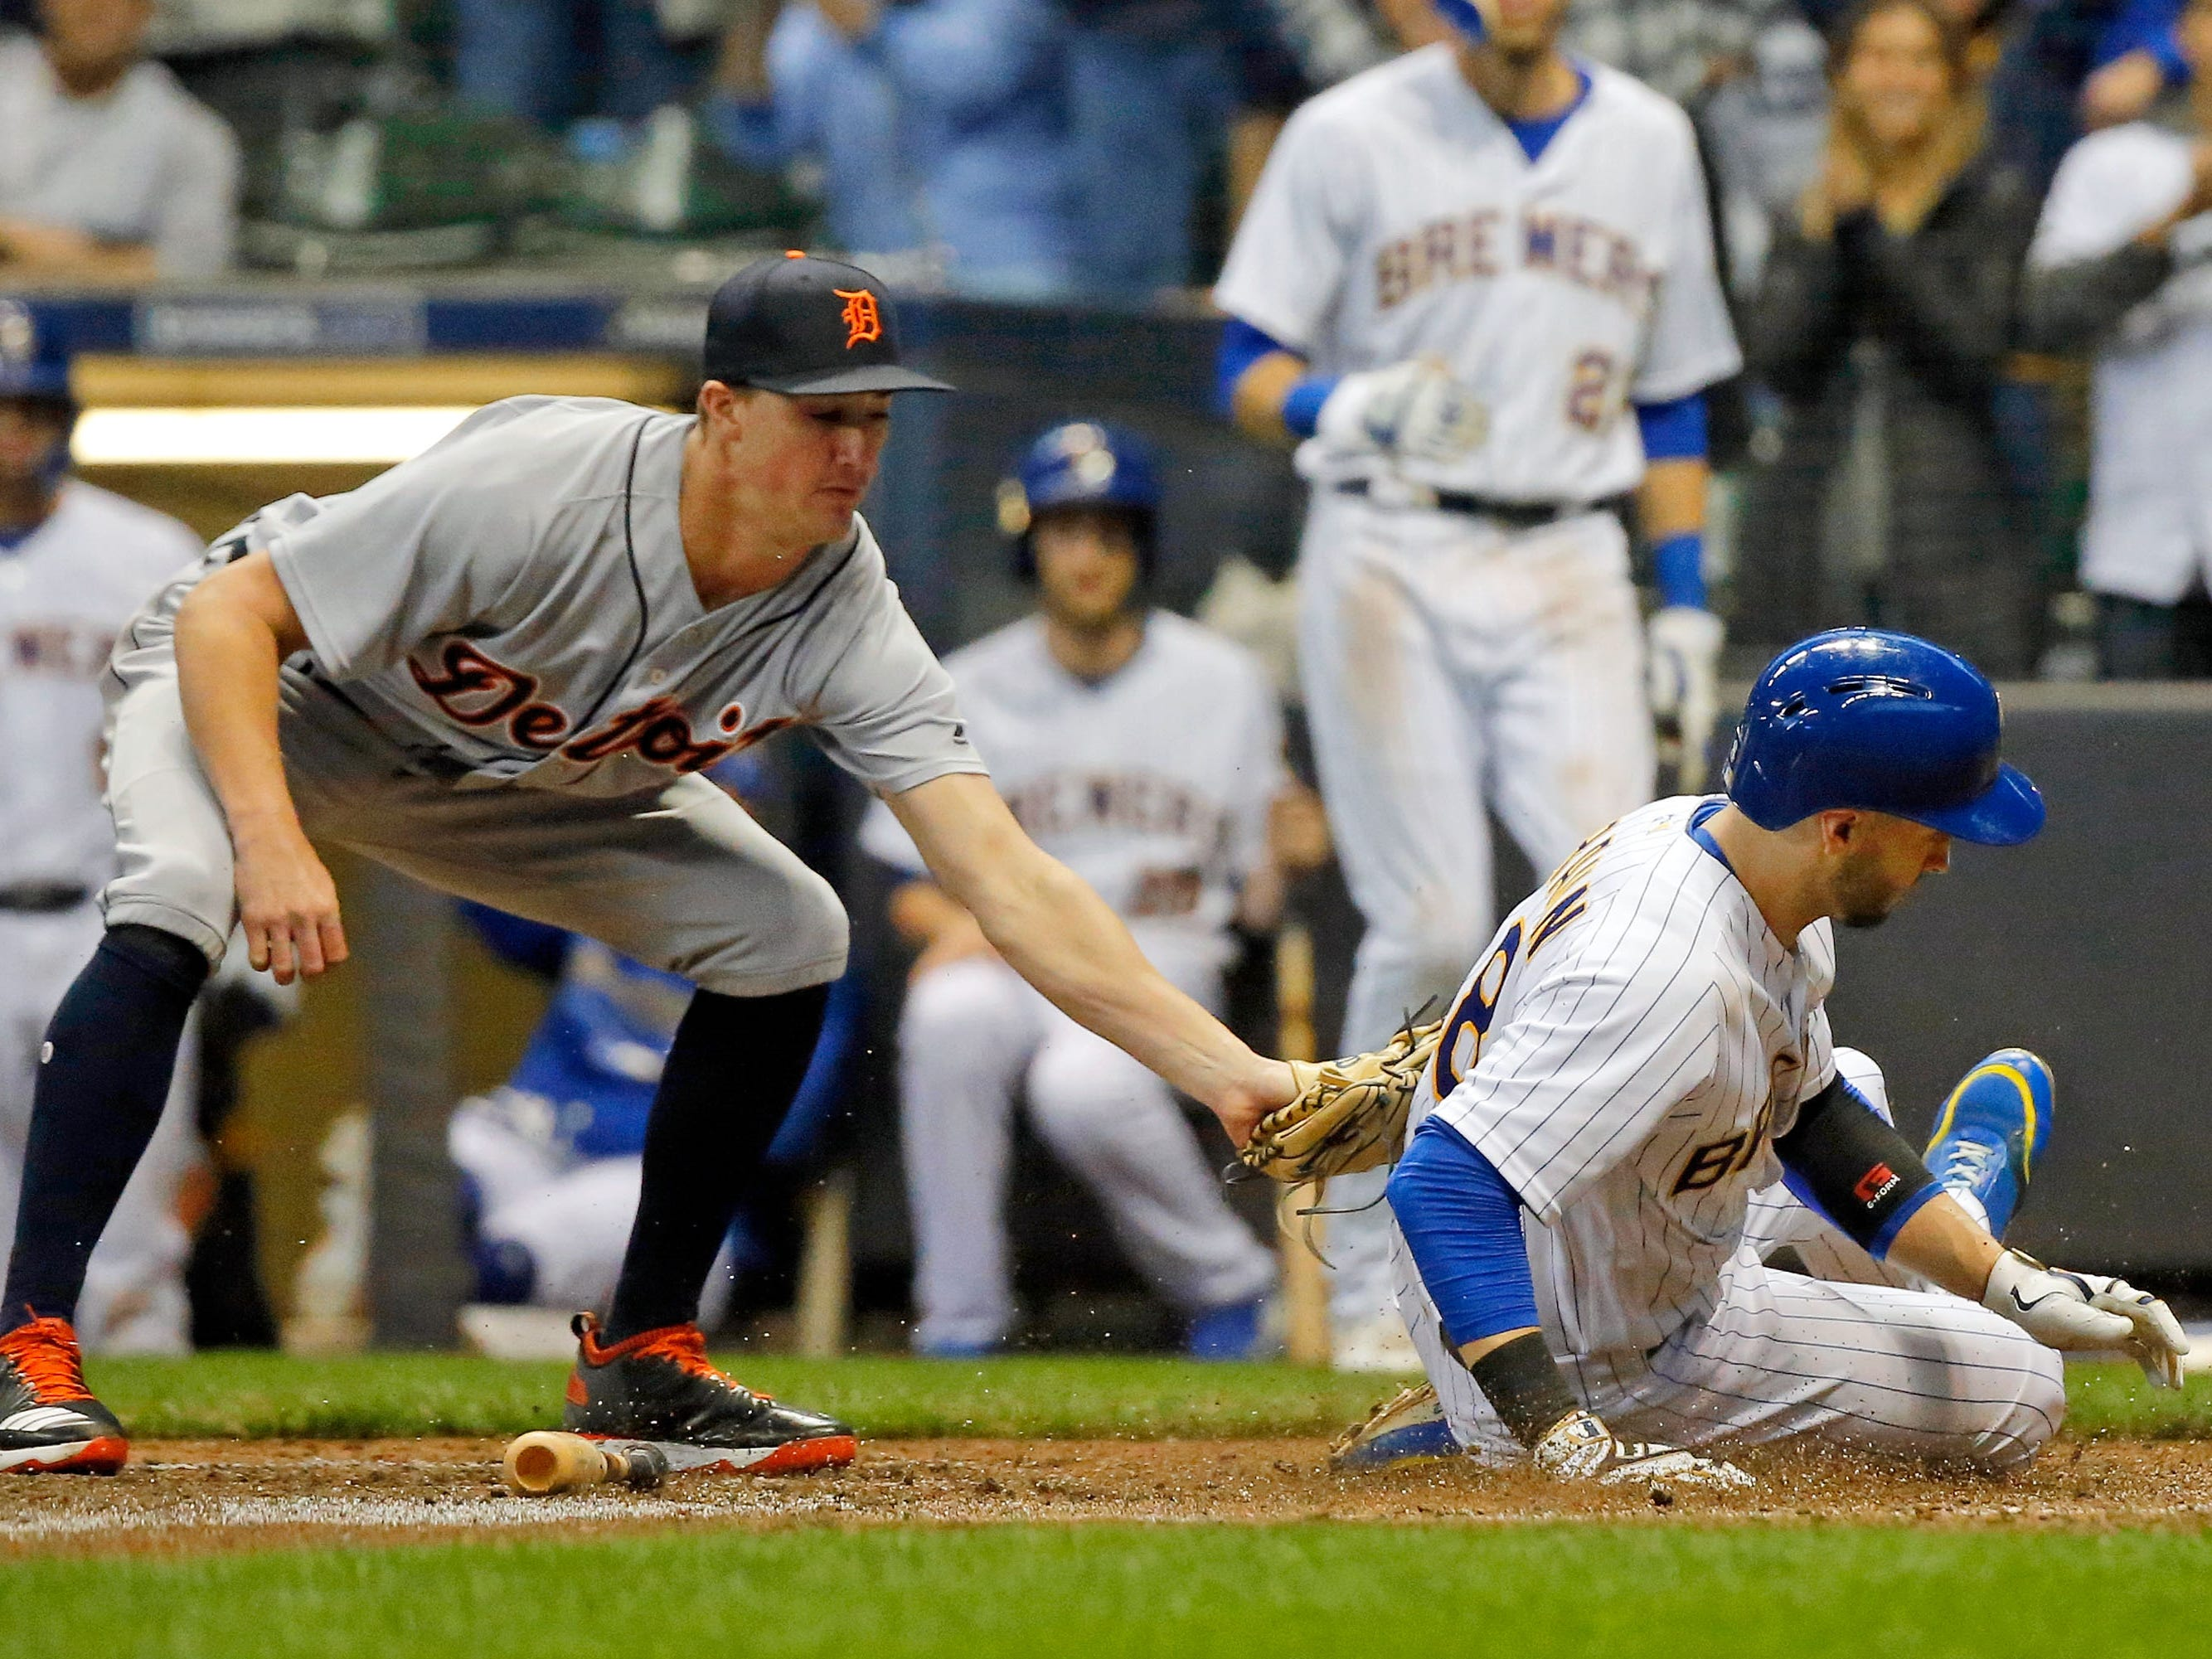 Milwaukee Brewers' Ryan Braun slides safely into home as Detroit Tigers reliever Zac Reininger applies the late tag to during the seventh inning on Sept. 30, 2018 in Milwaukee.